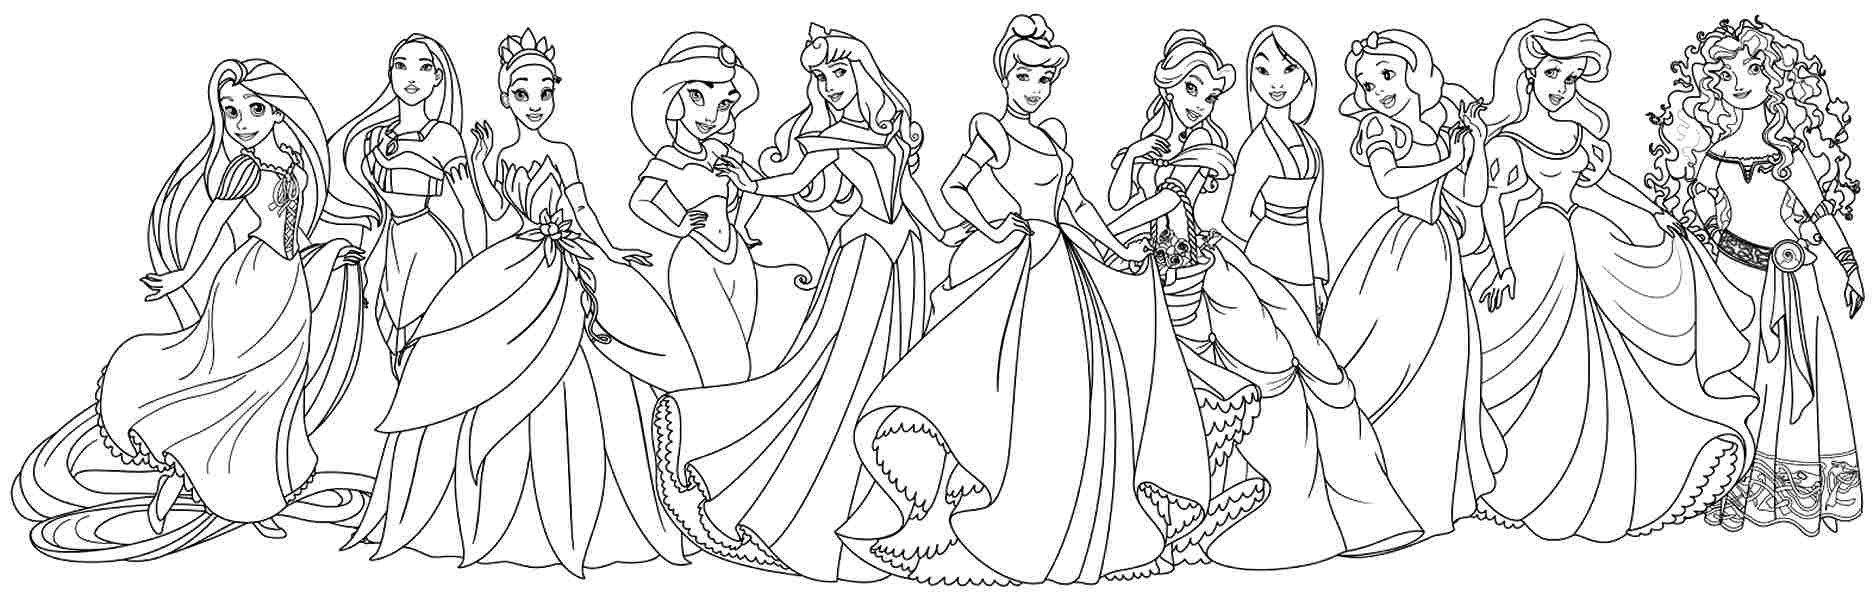 Disney Princess Coloring Pages For Girls Free Coloring Sheets